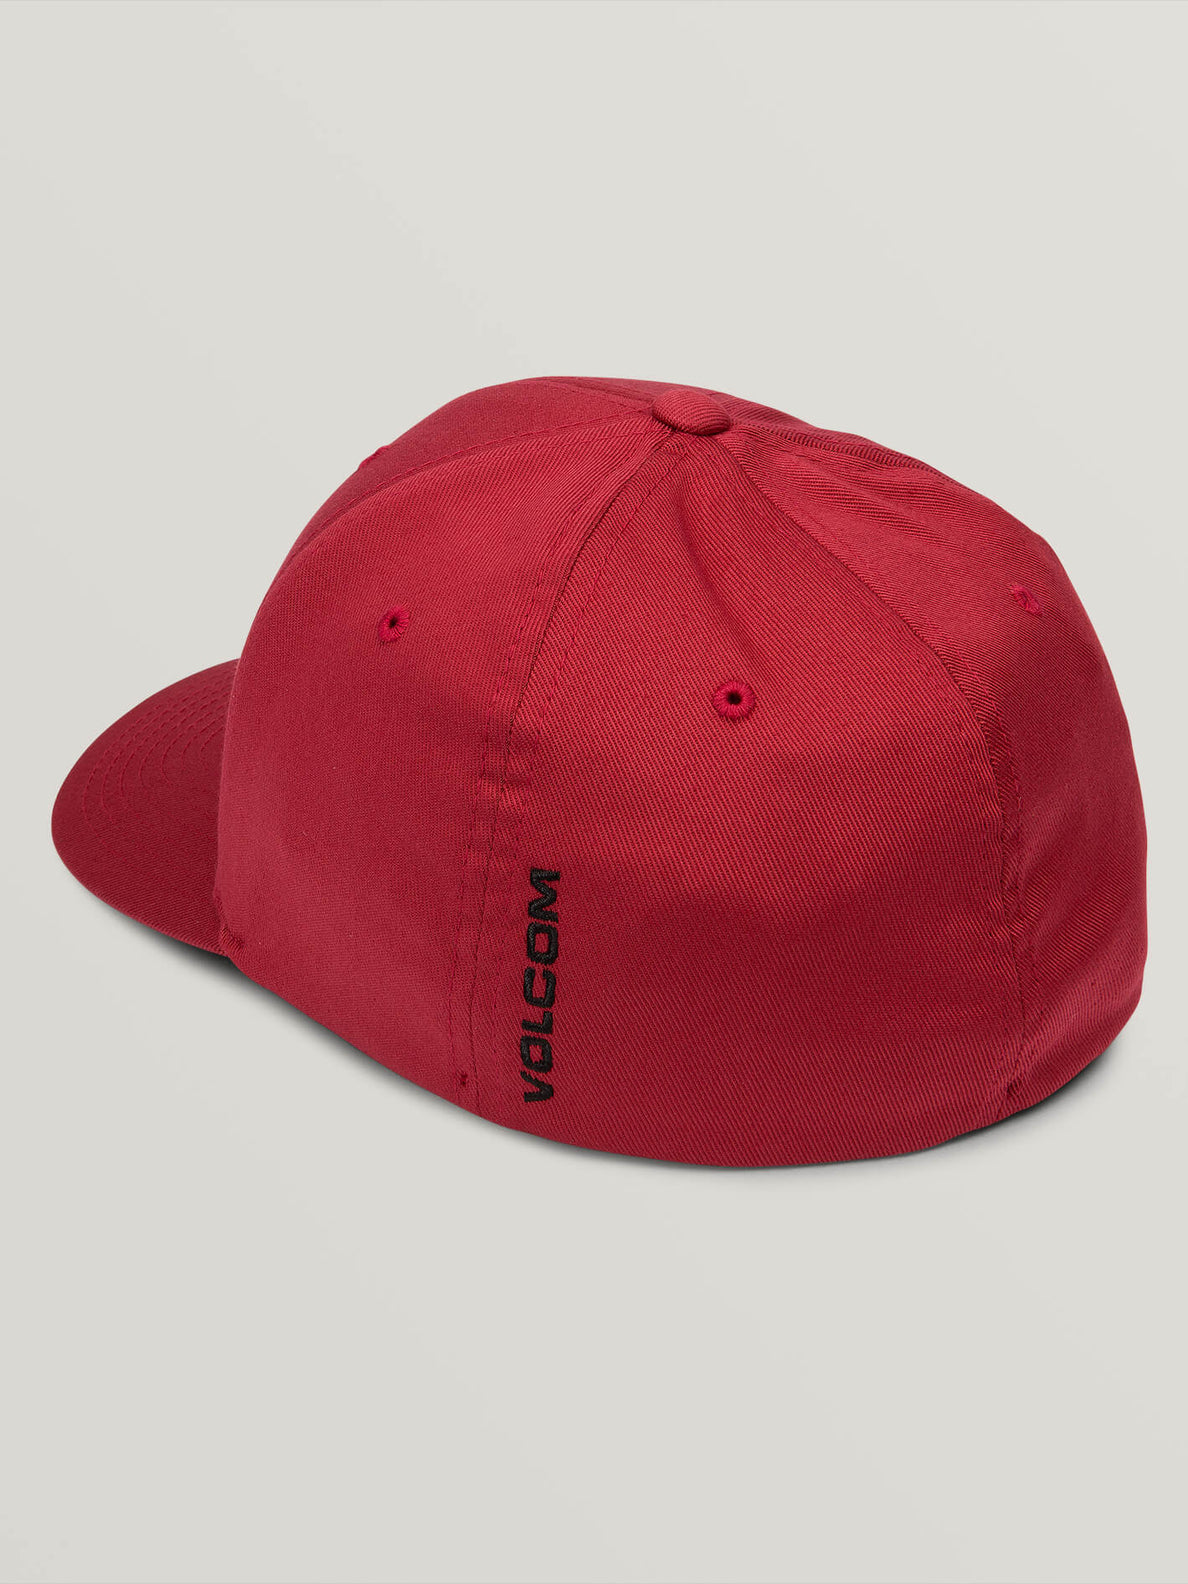 Full Stone Xfit Hat In Burgundy, Alternate View